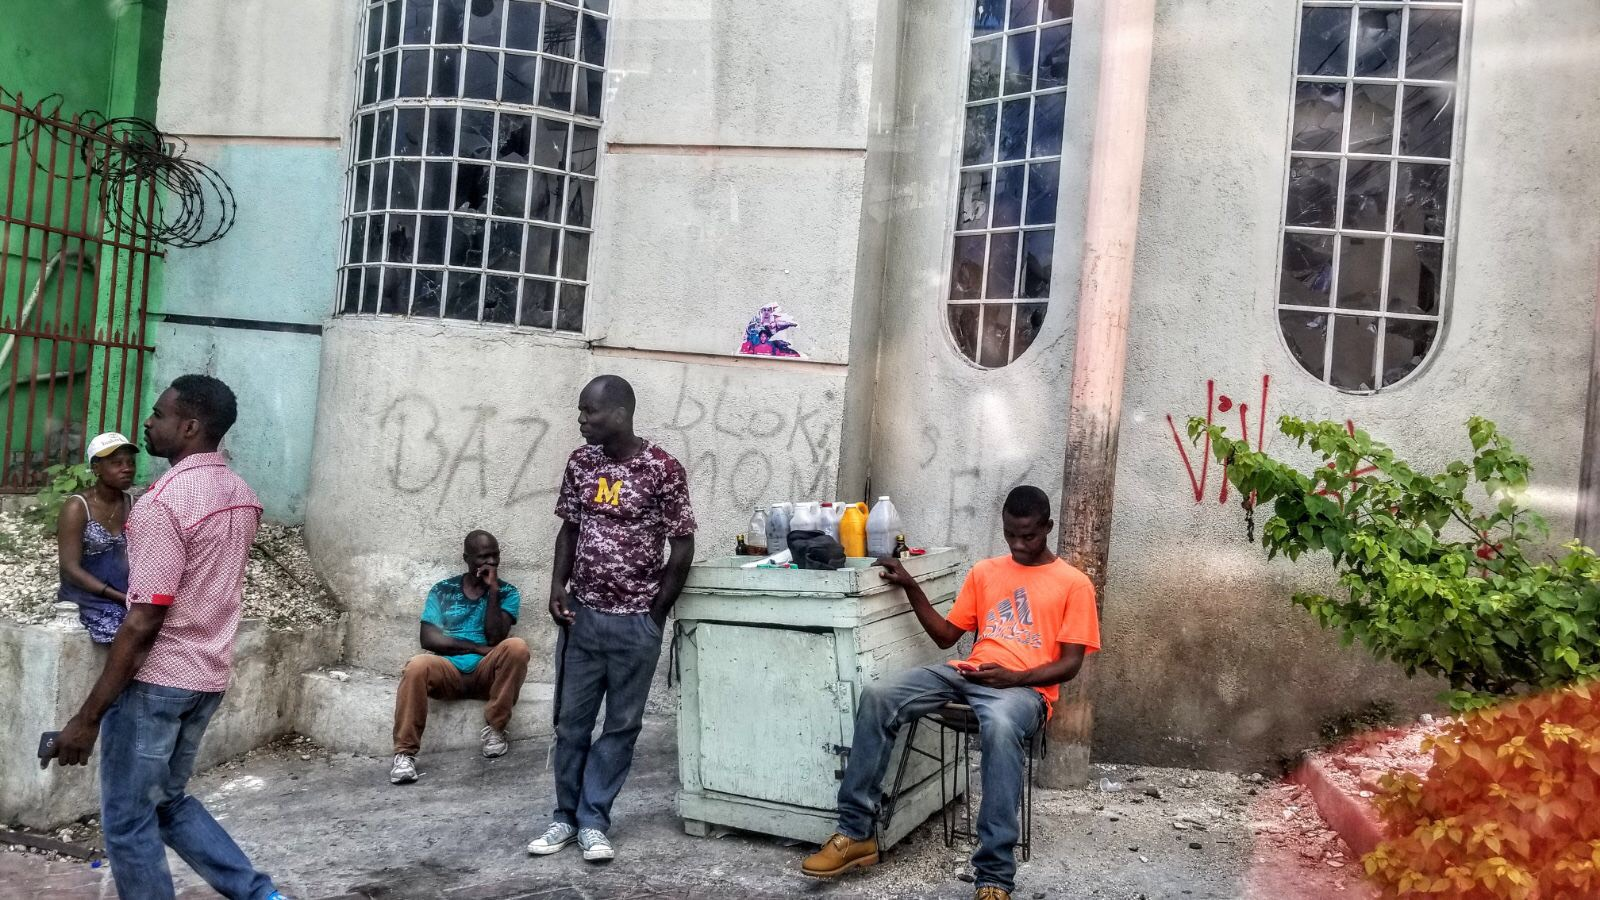 Haitians on a street corner in Petionville. (S. Lemaire/VOA)